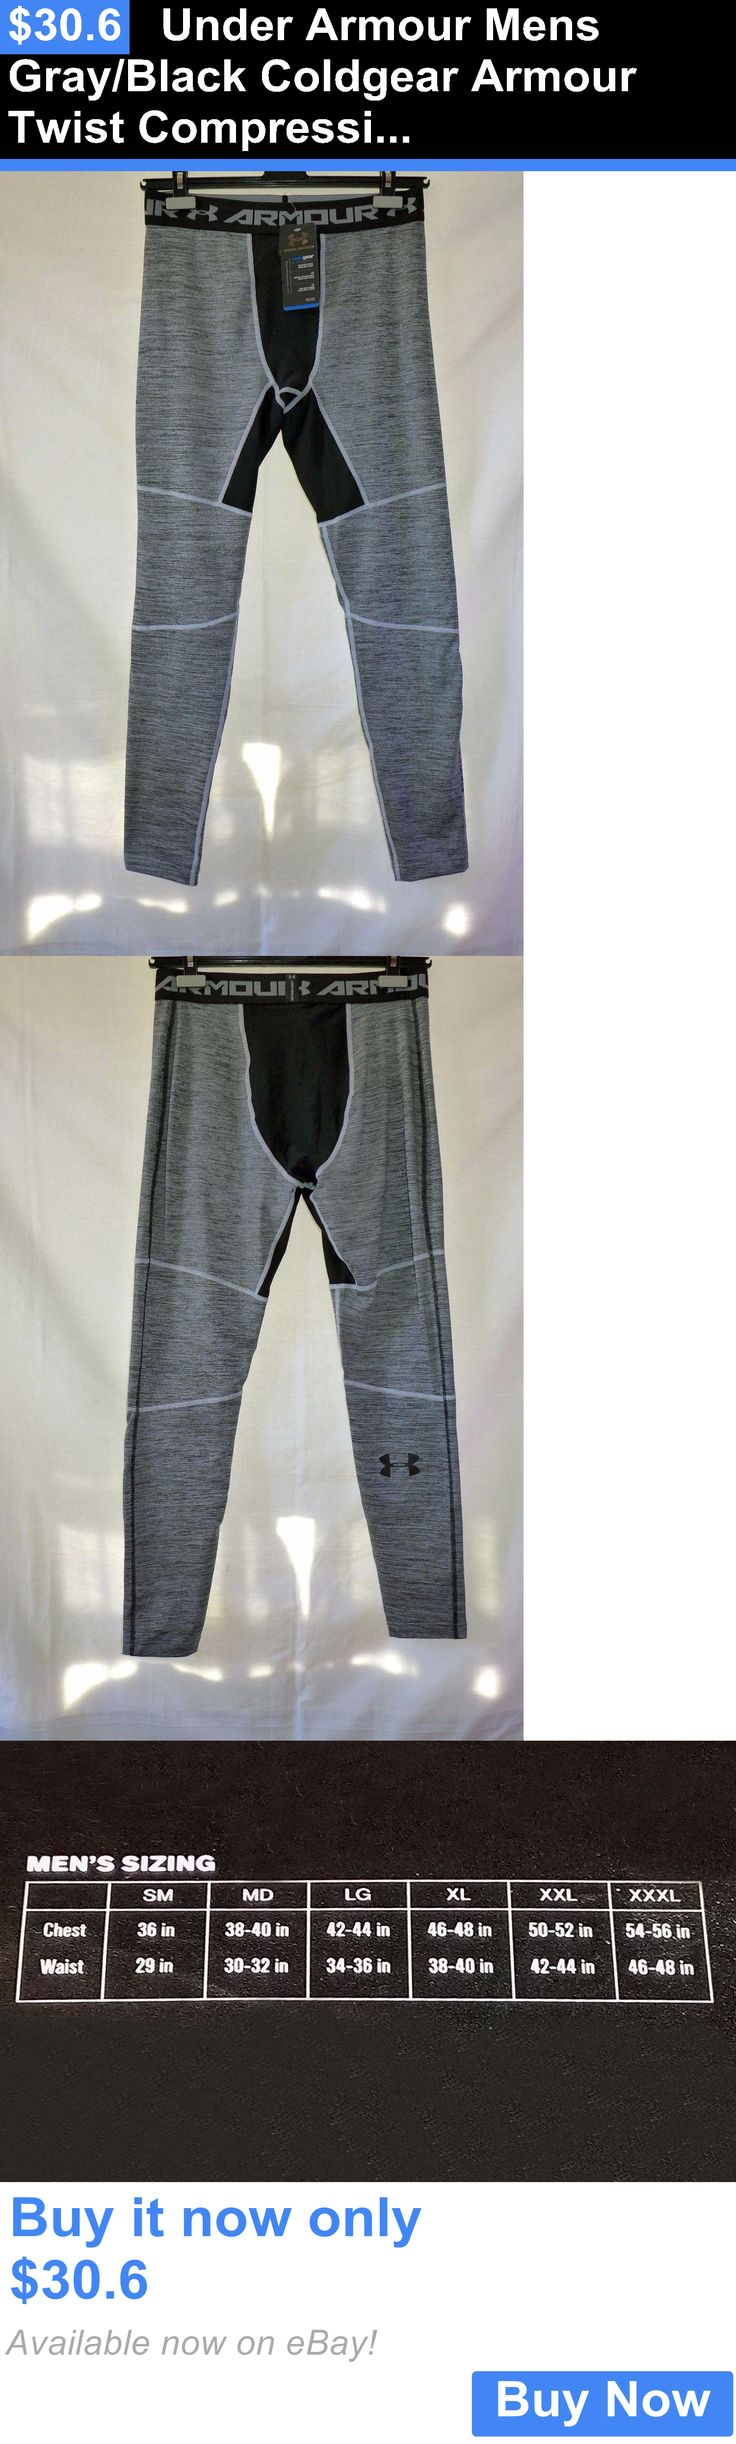 Men Athletics: Under Armour Mens Gray/Black Coldgear Armour Twist Compression Leggings Xl Nwt BUY IT NOW ONLY: $30.6